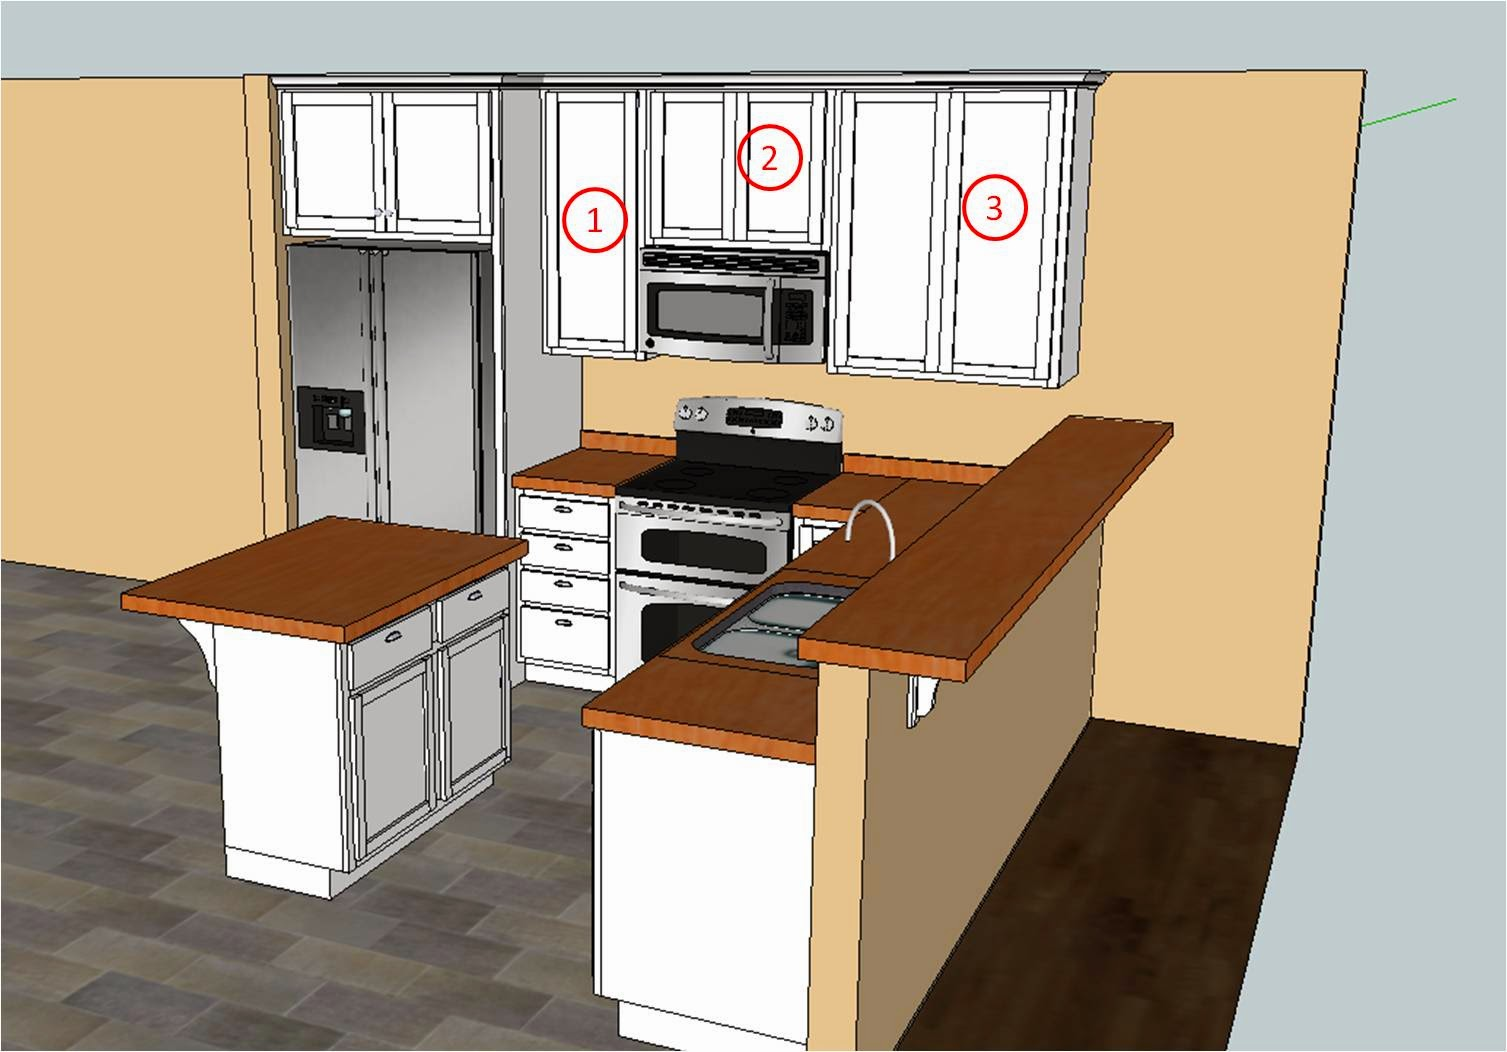 To Start Off The Project I Drew Up Three Kitchen Cabinets In Sketchup So Could Figure Out How Much Material Was Going Need And Get A Good